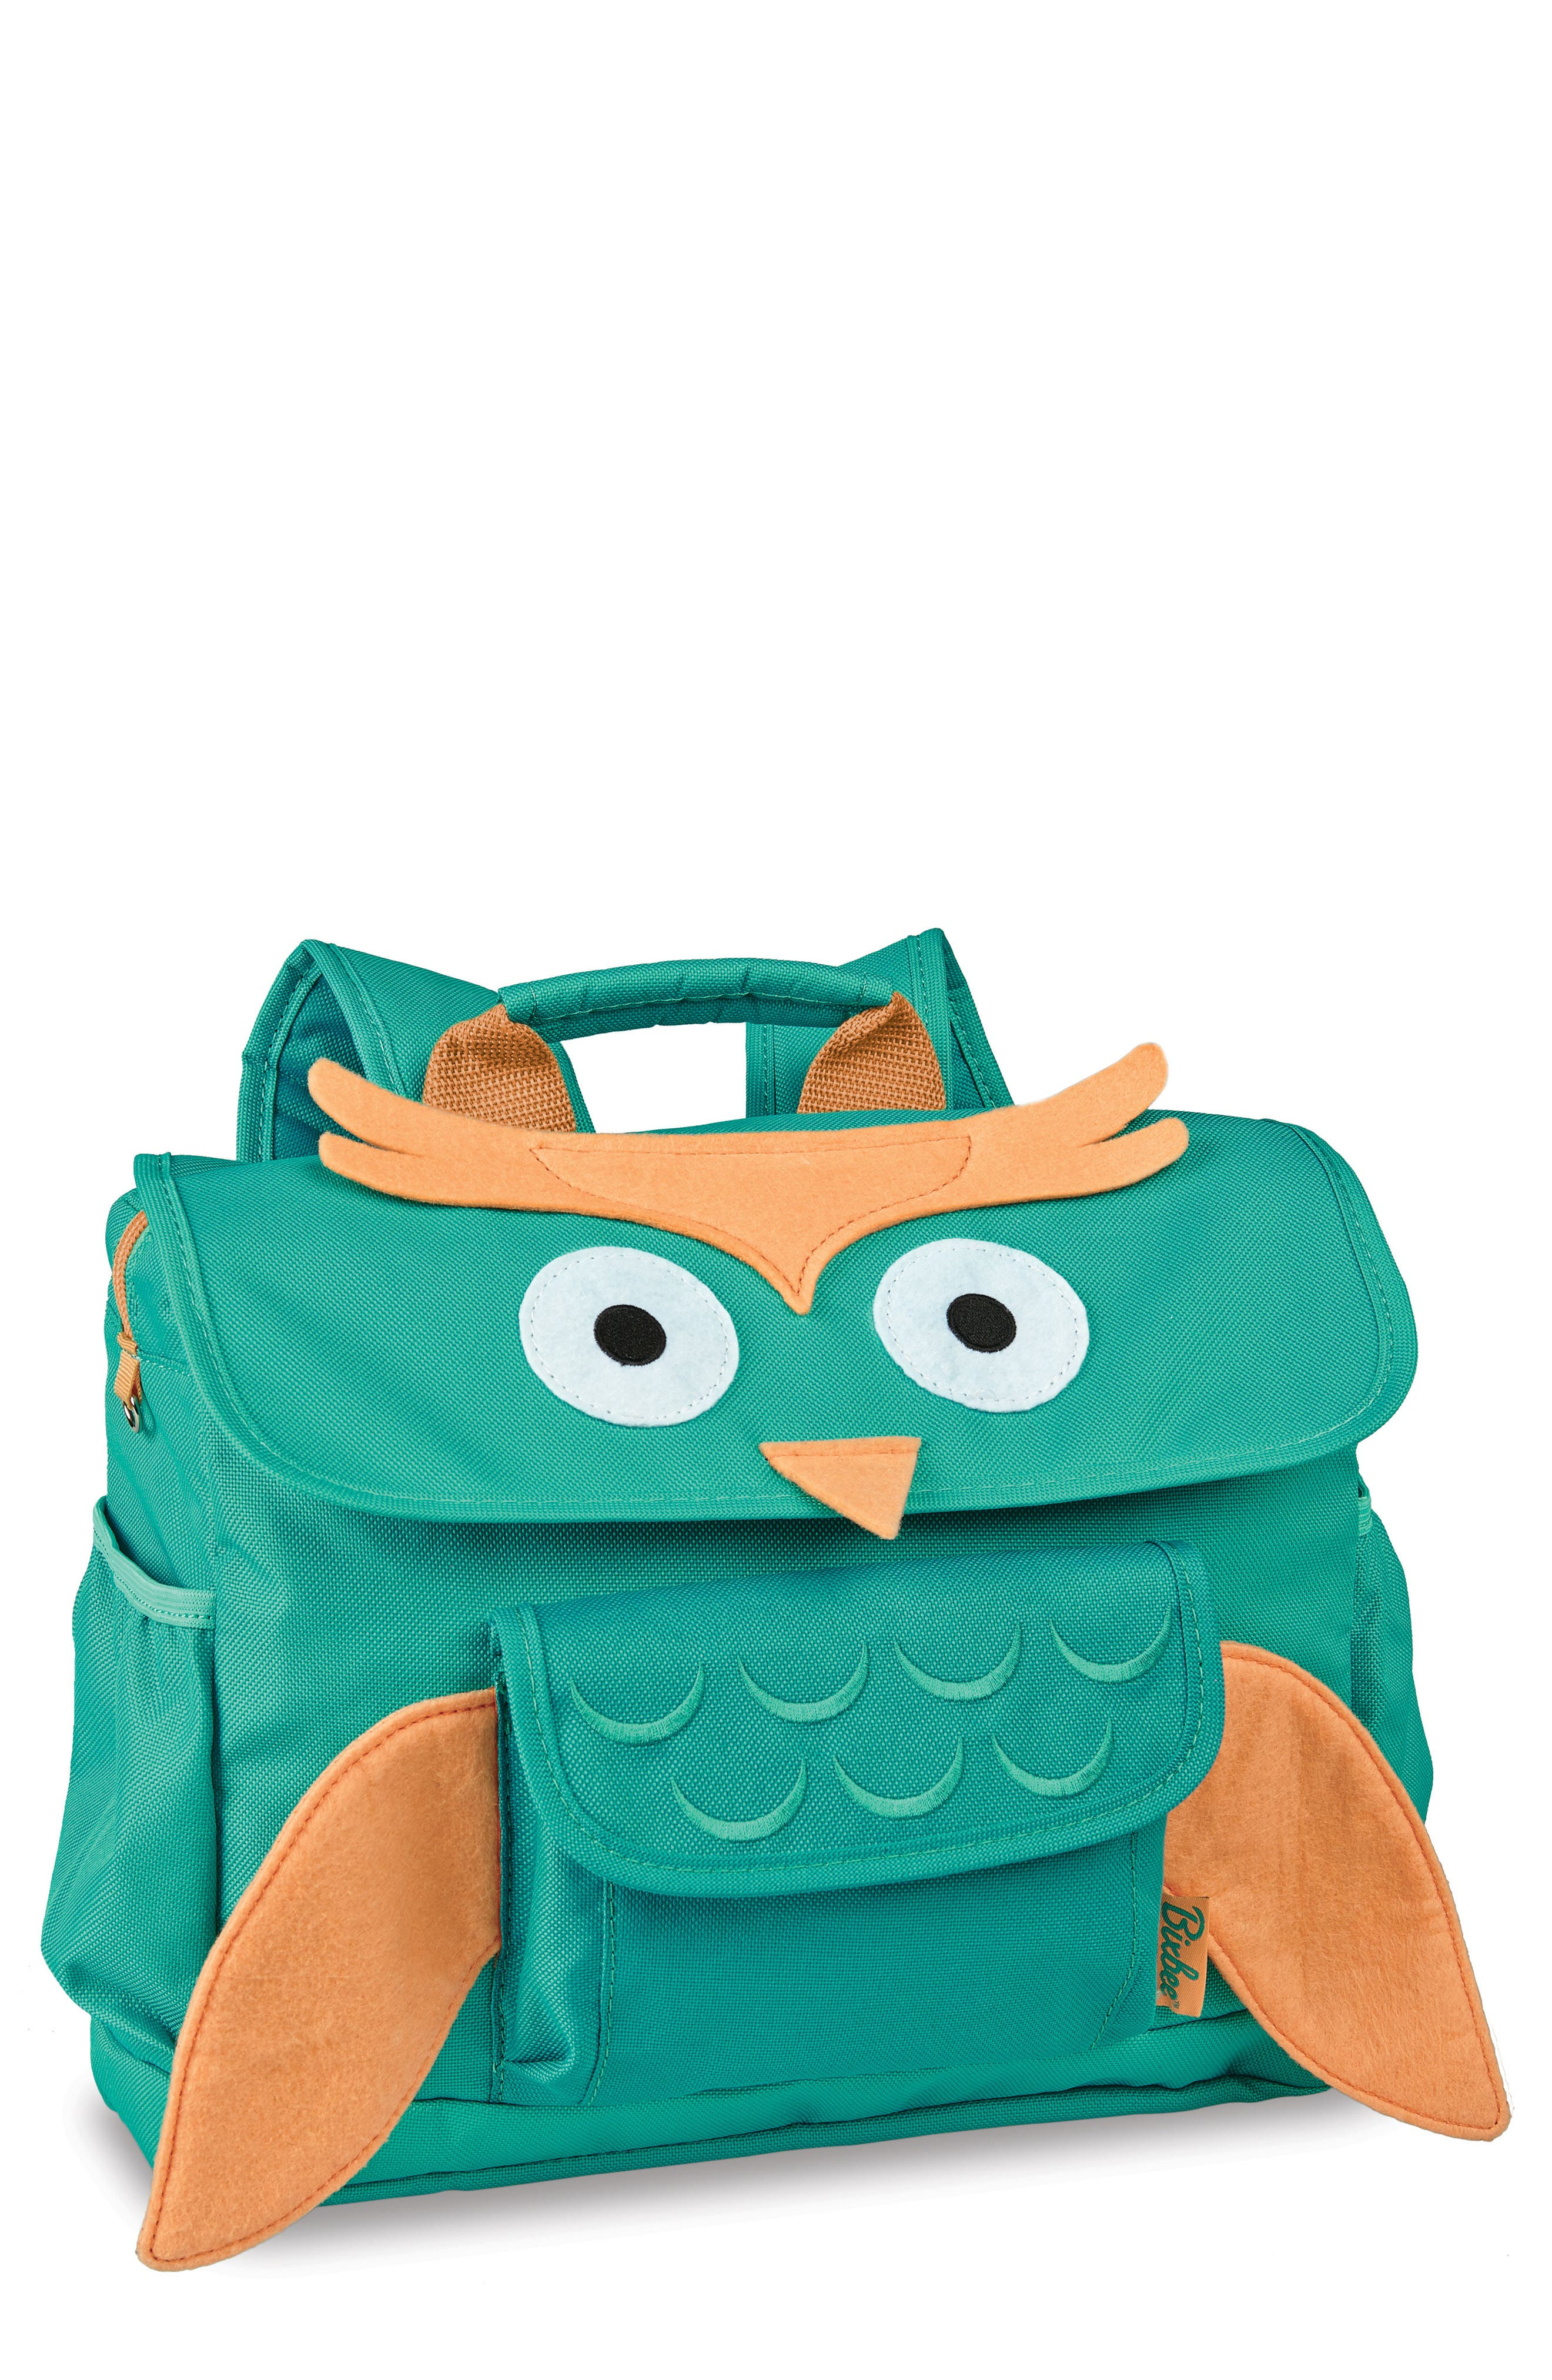 Animal Pack – Owl Backpack,                             Main thumbnail 1, color,                             Teal